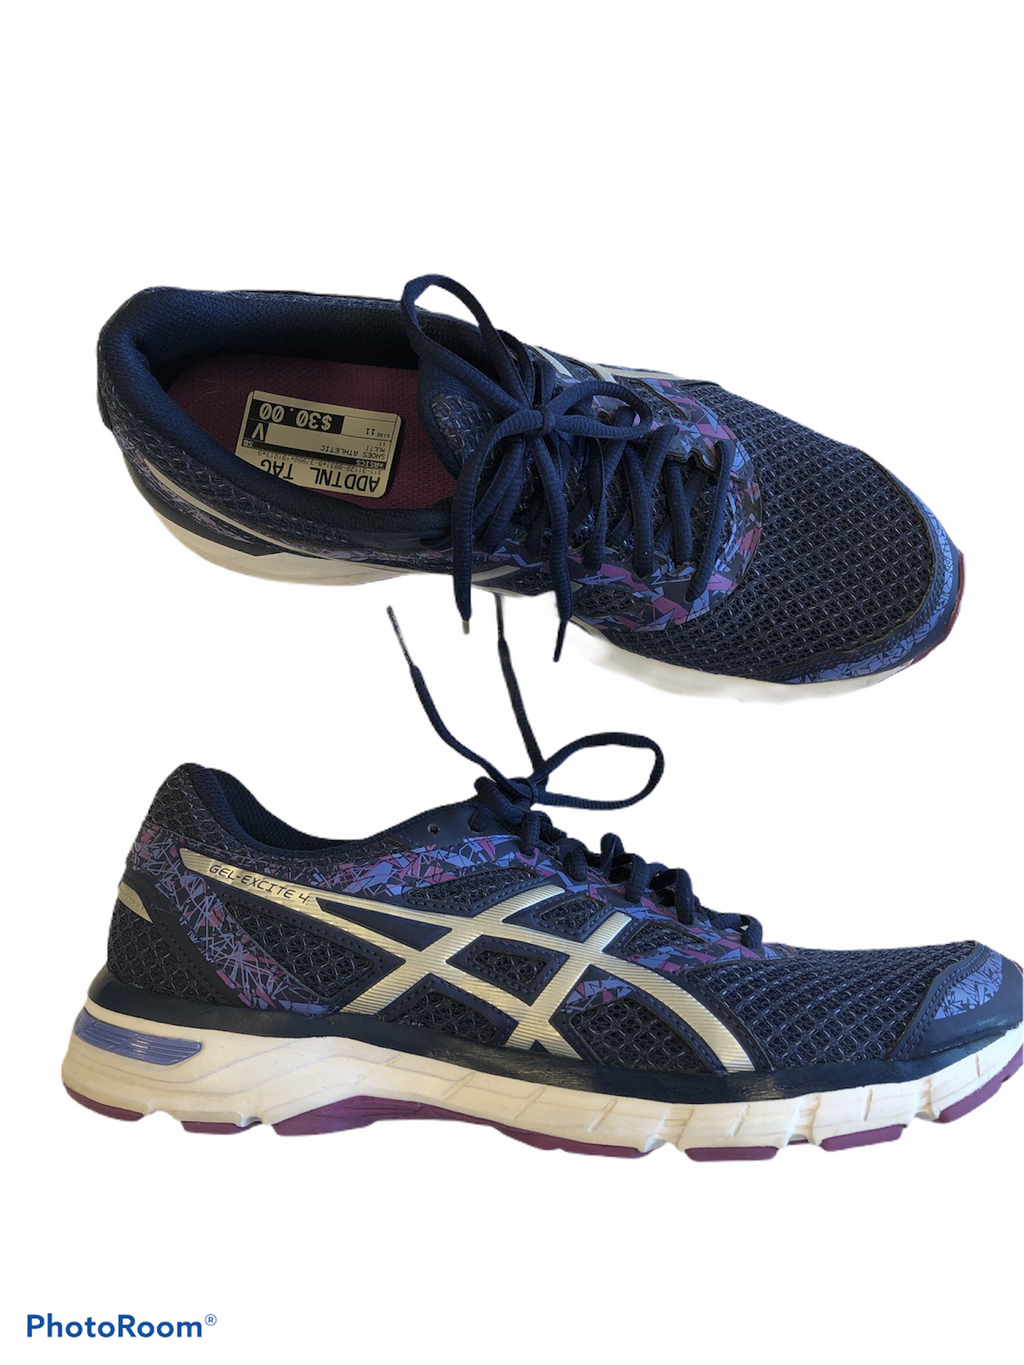 Shoes Athletic By Asics  Size: 11